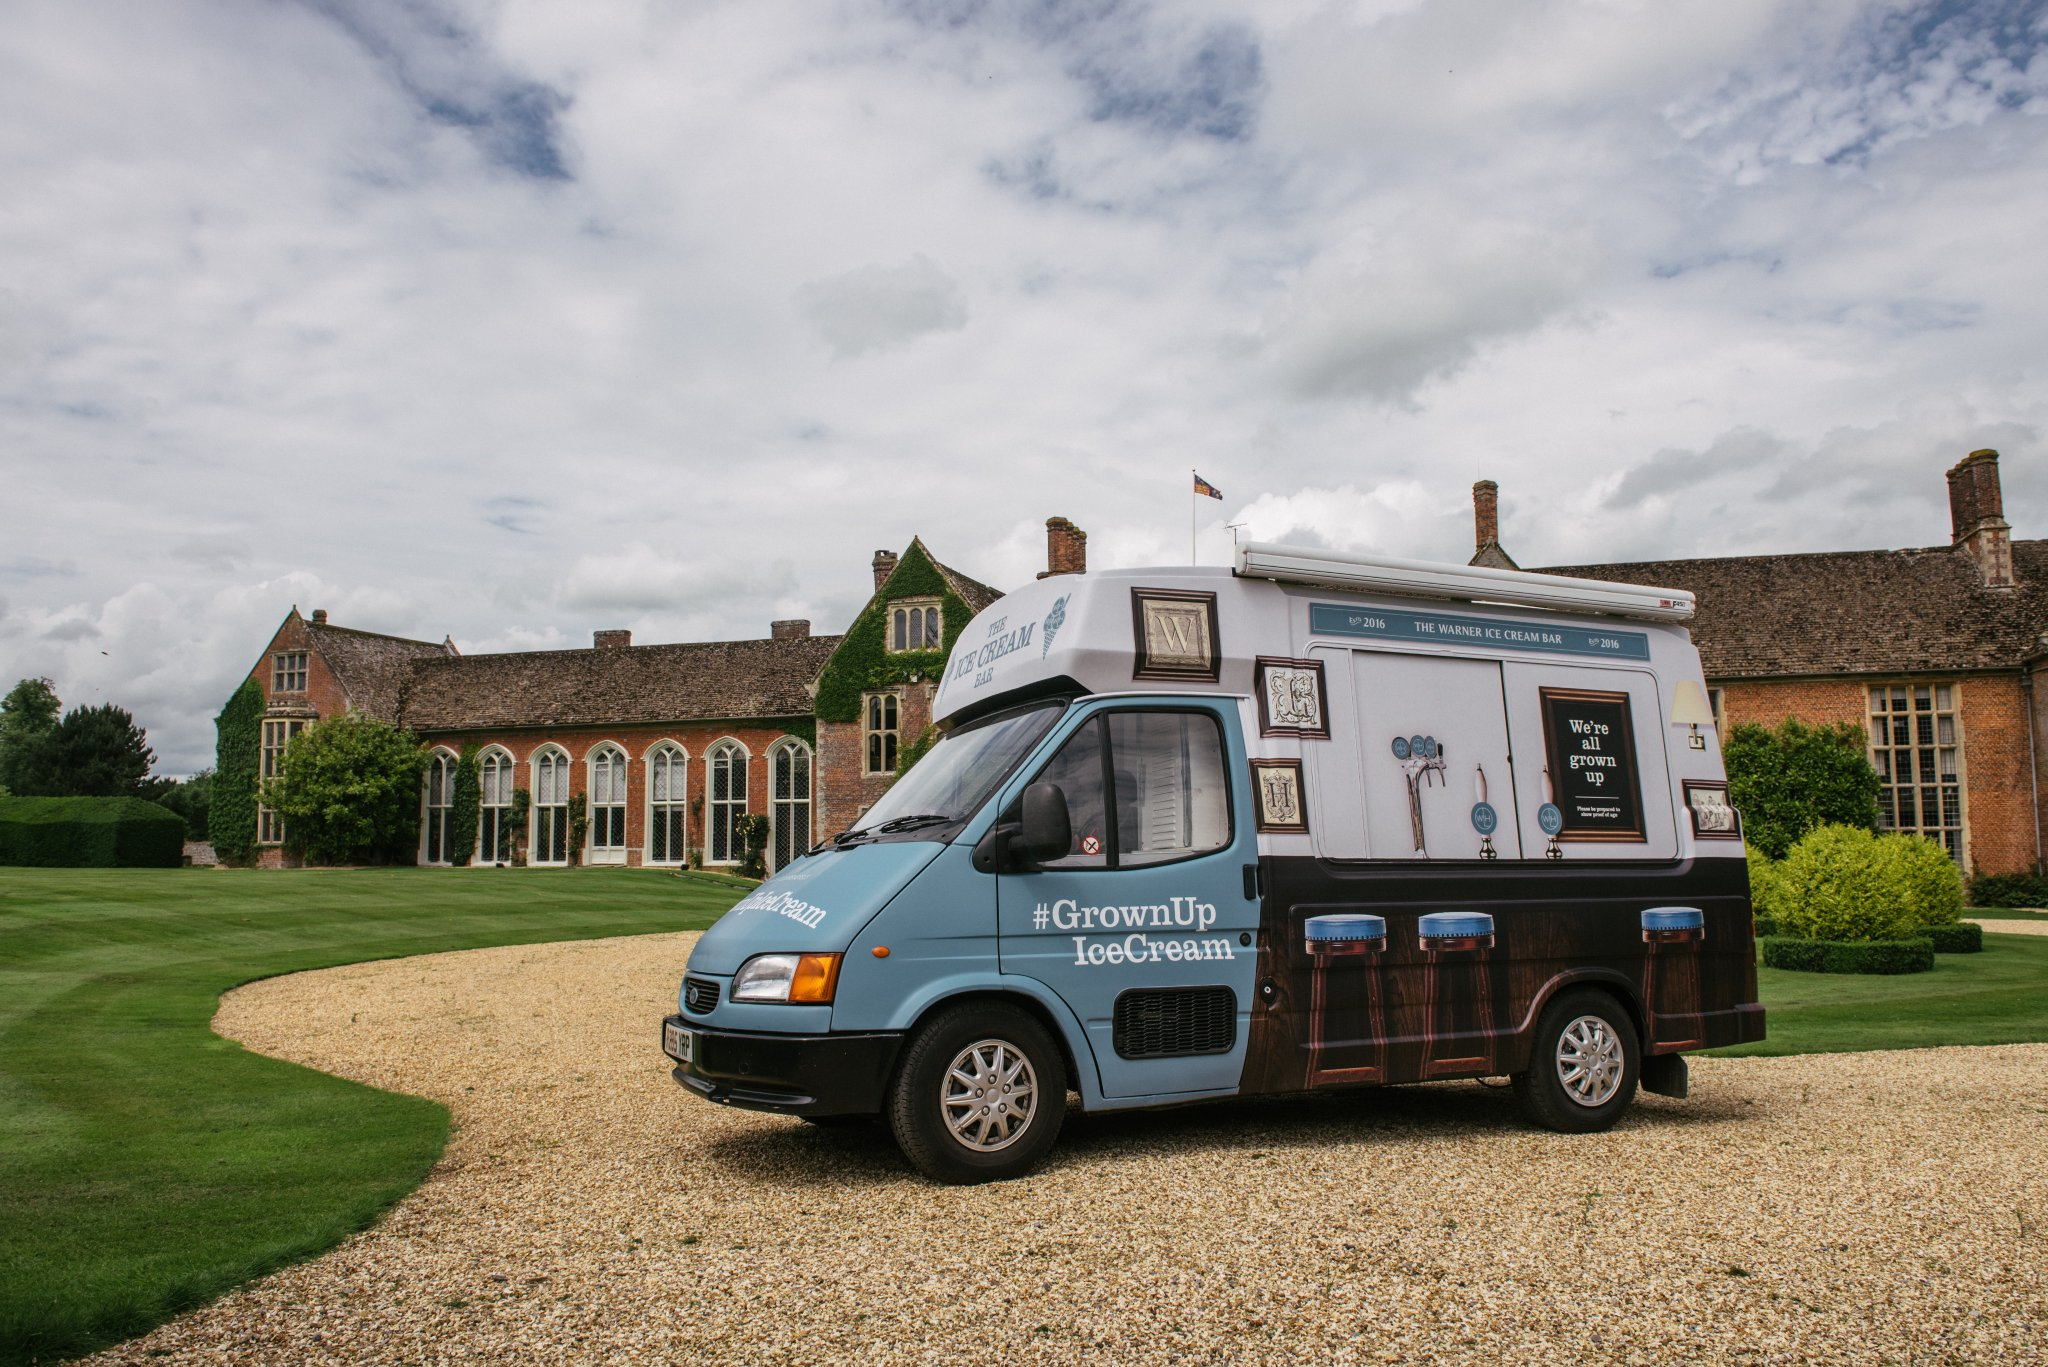 Boozy Mr Whippy in a town near you